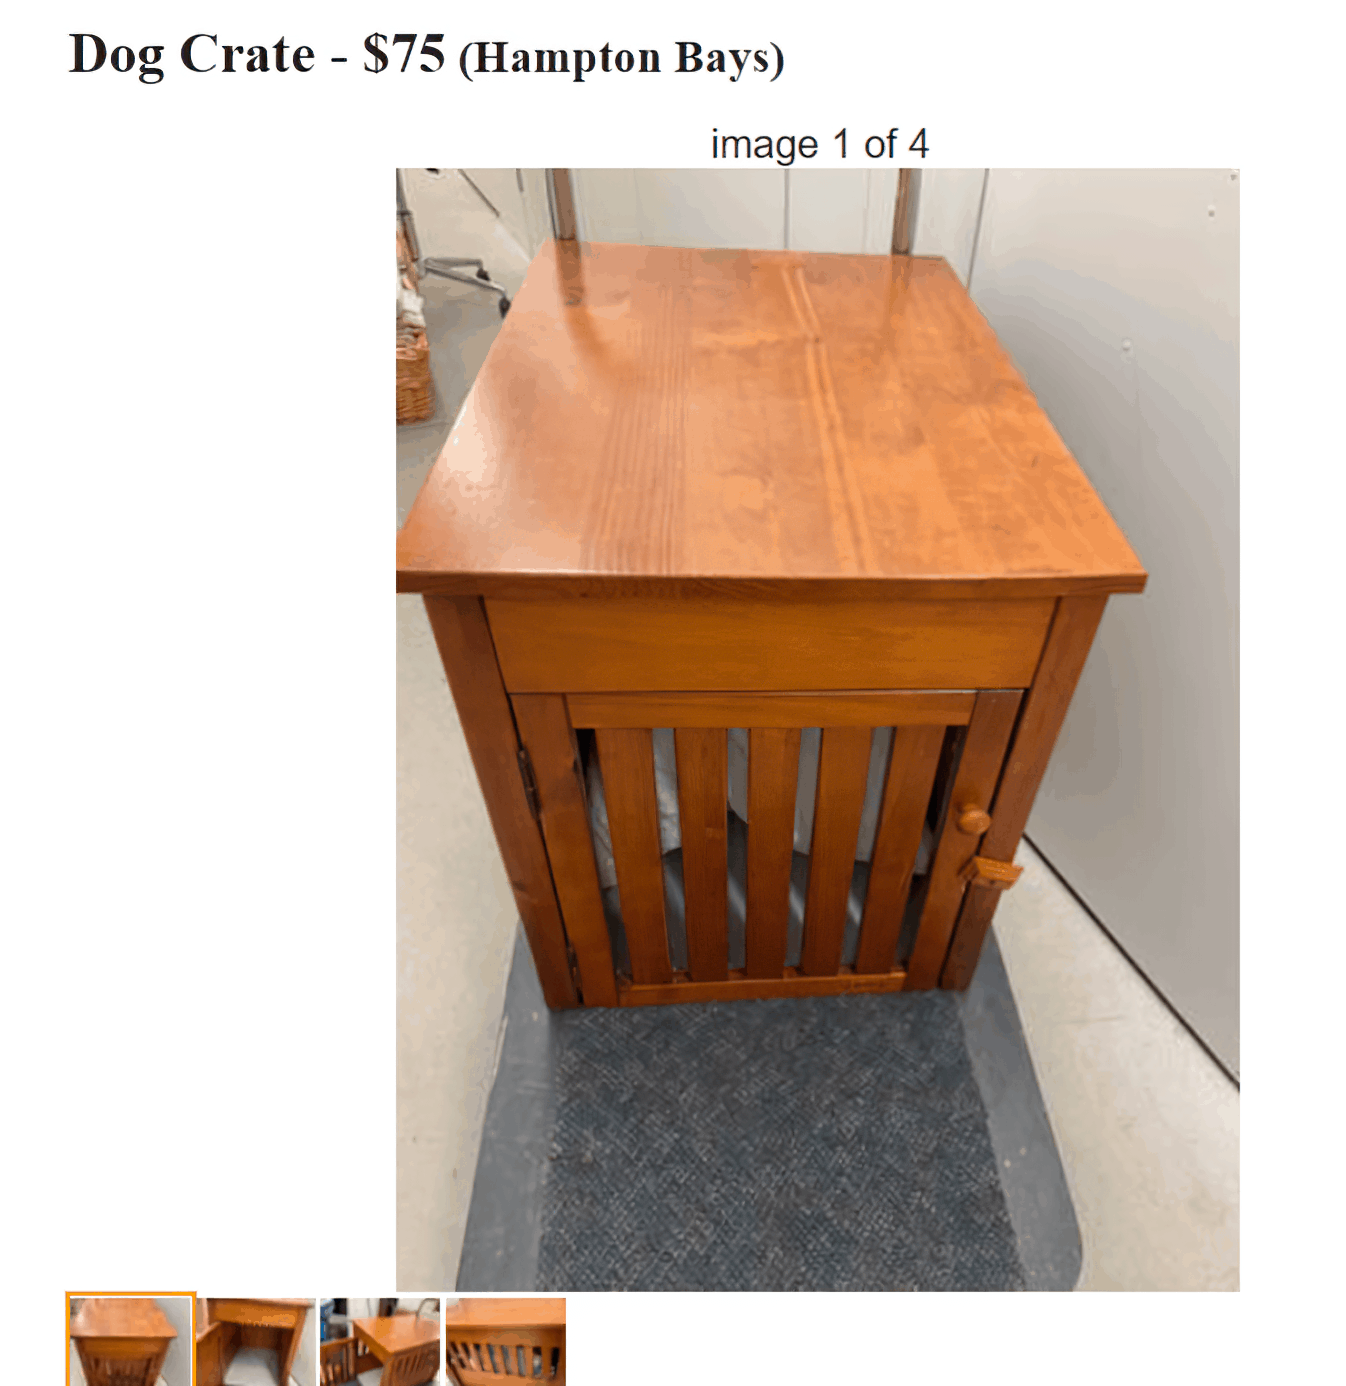 wooden dog crate enlarged